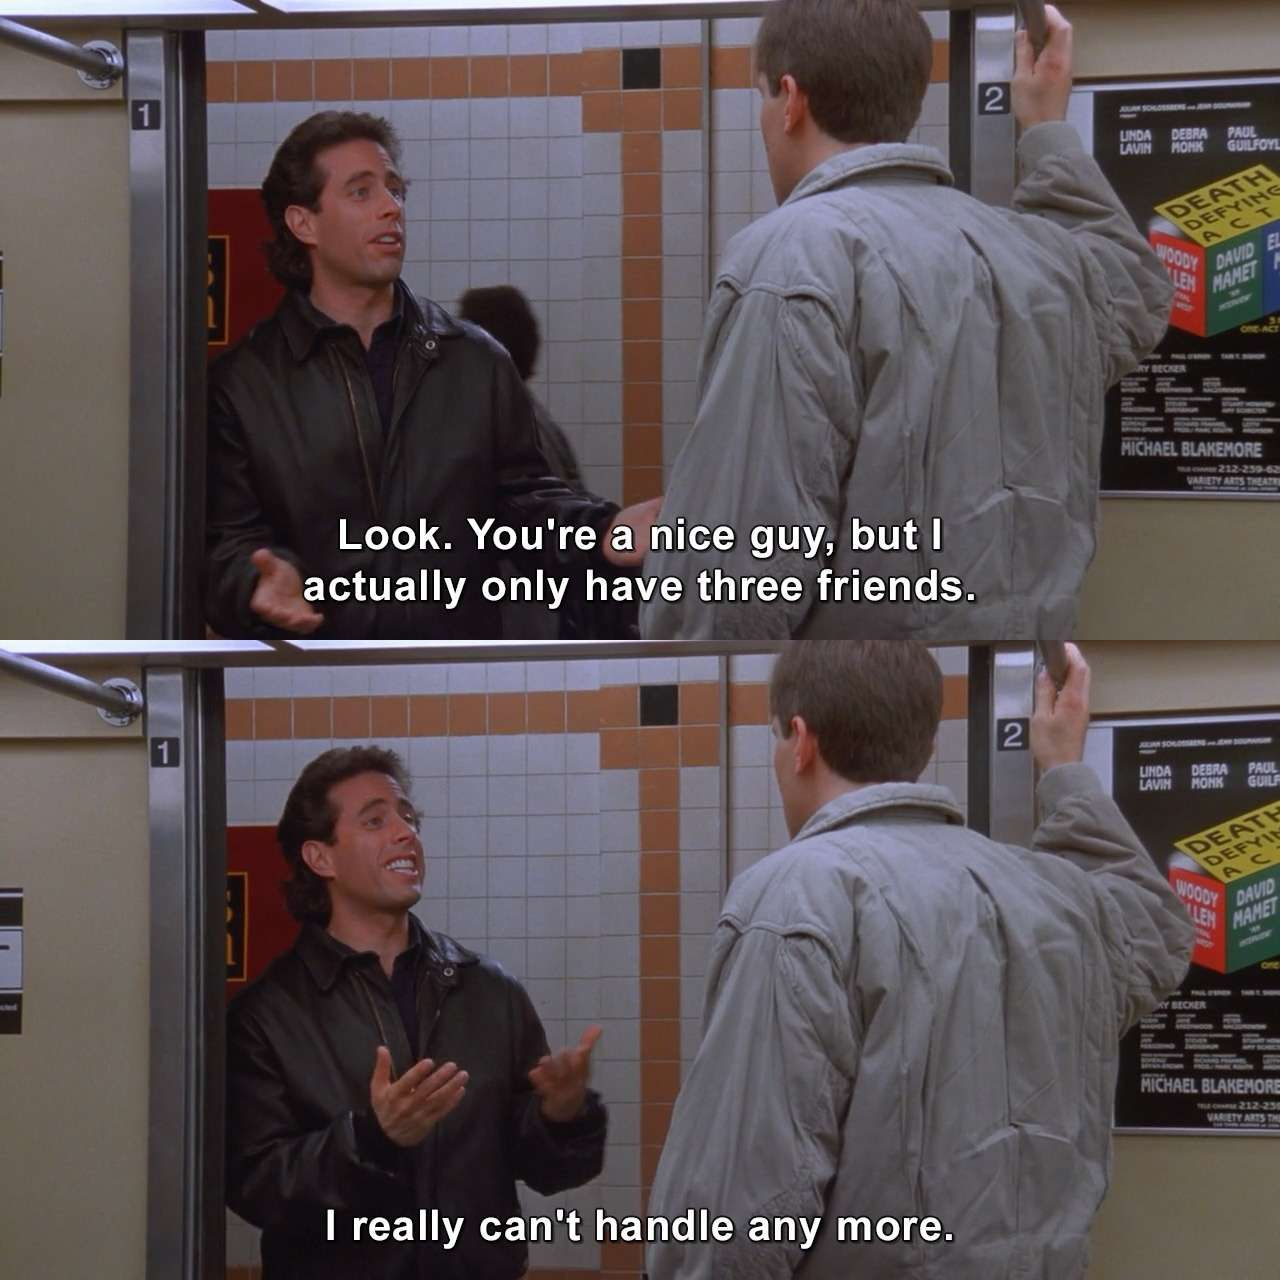 Seinfeld The Pool Guy Jerryseinfeld Seinfeld Thepoolguy Comedy Lol Seinfeld Quotes Seinfeld Funny Seinfeld